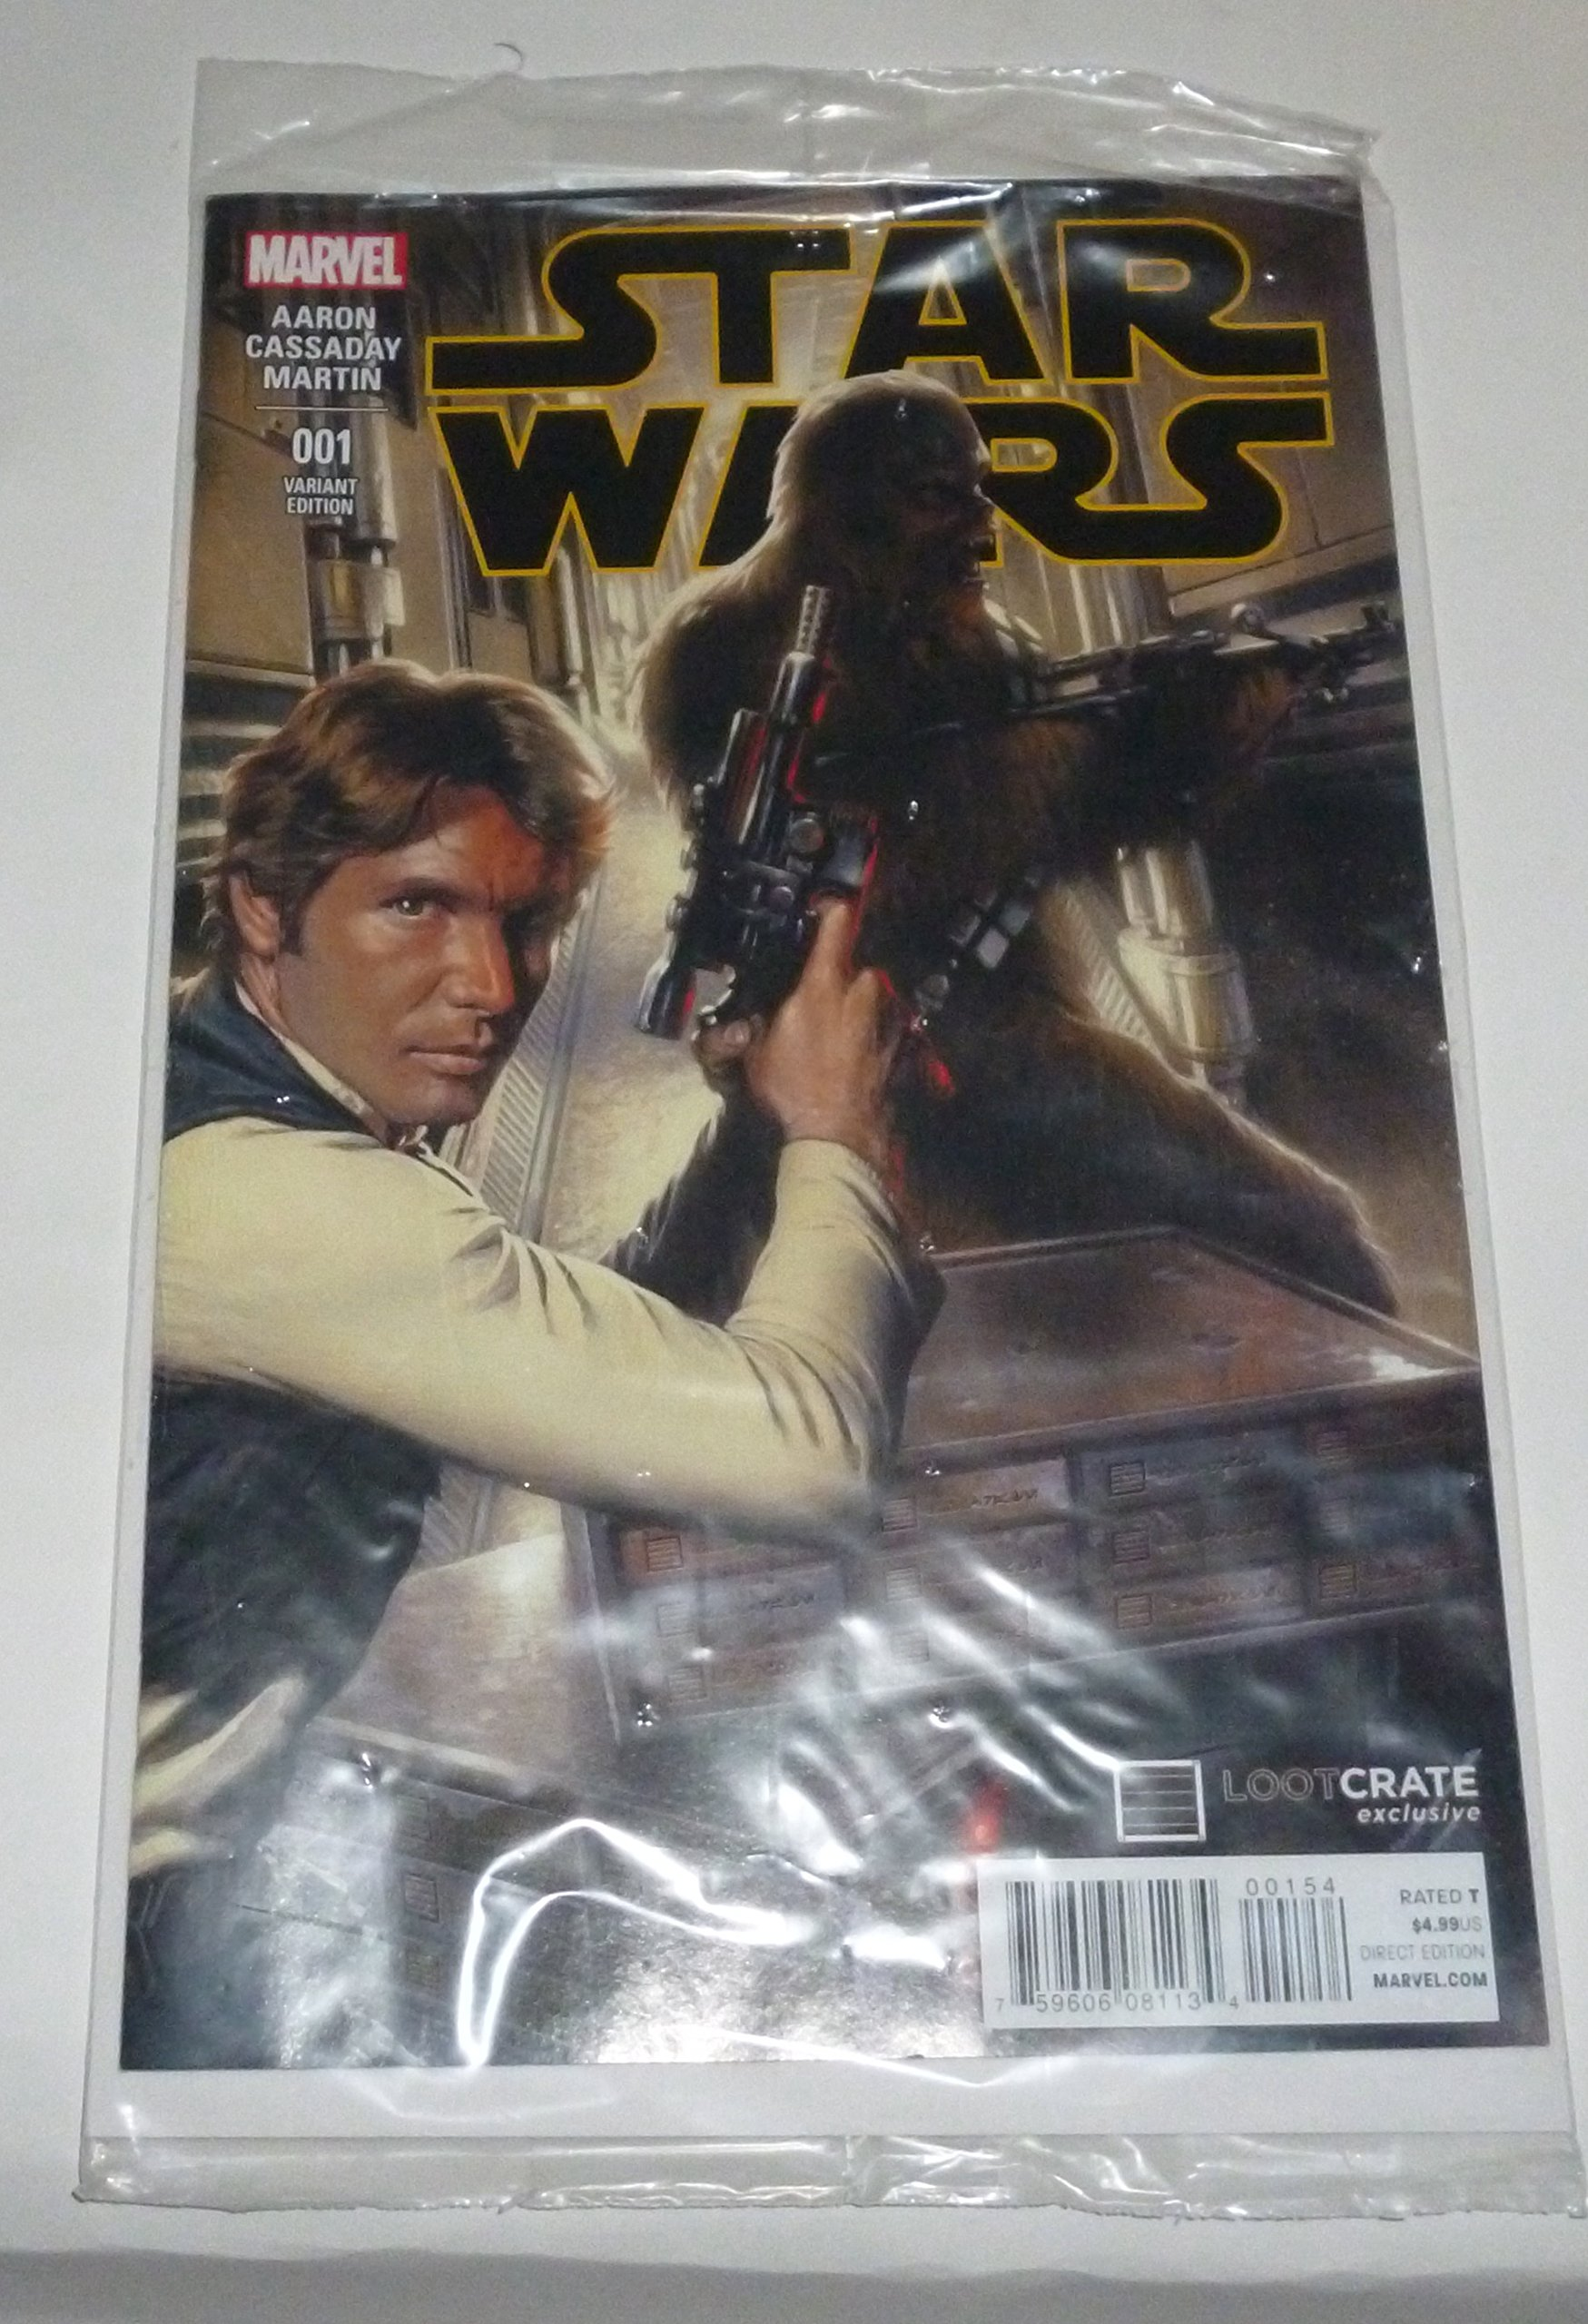 EXCLUSIVE LOOTCRATE!MARVEL!STAR WARS 001 VARIANT EDITION COMIC!BRAND NEW/&SEALED!